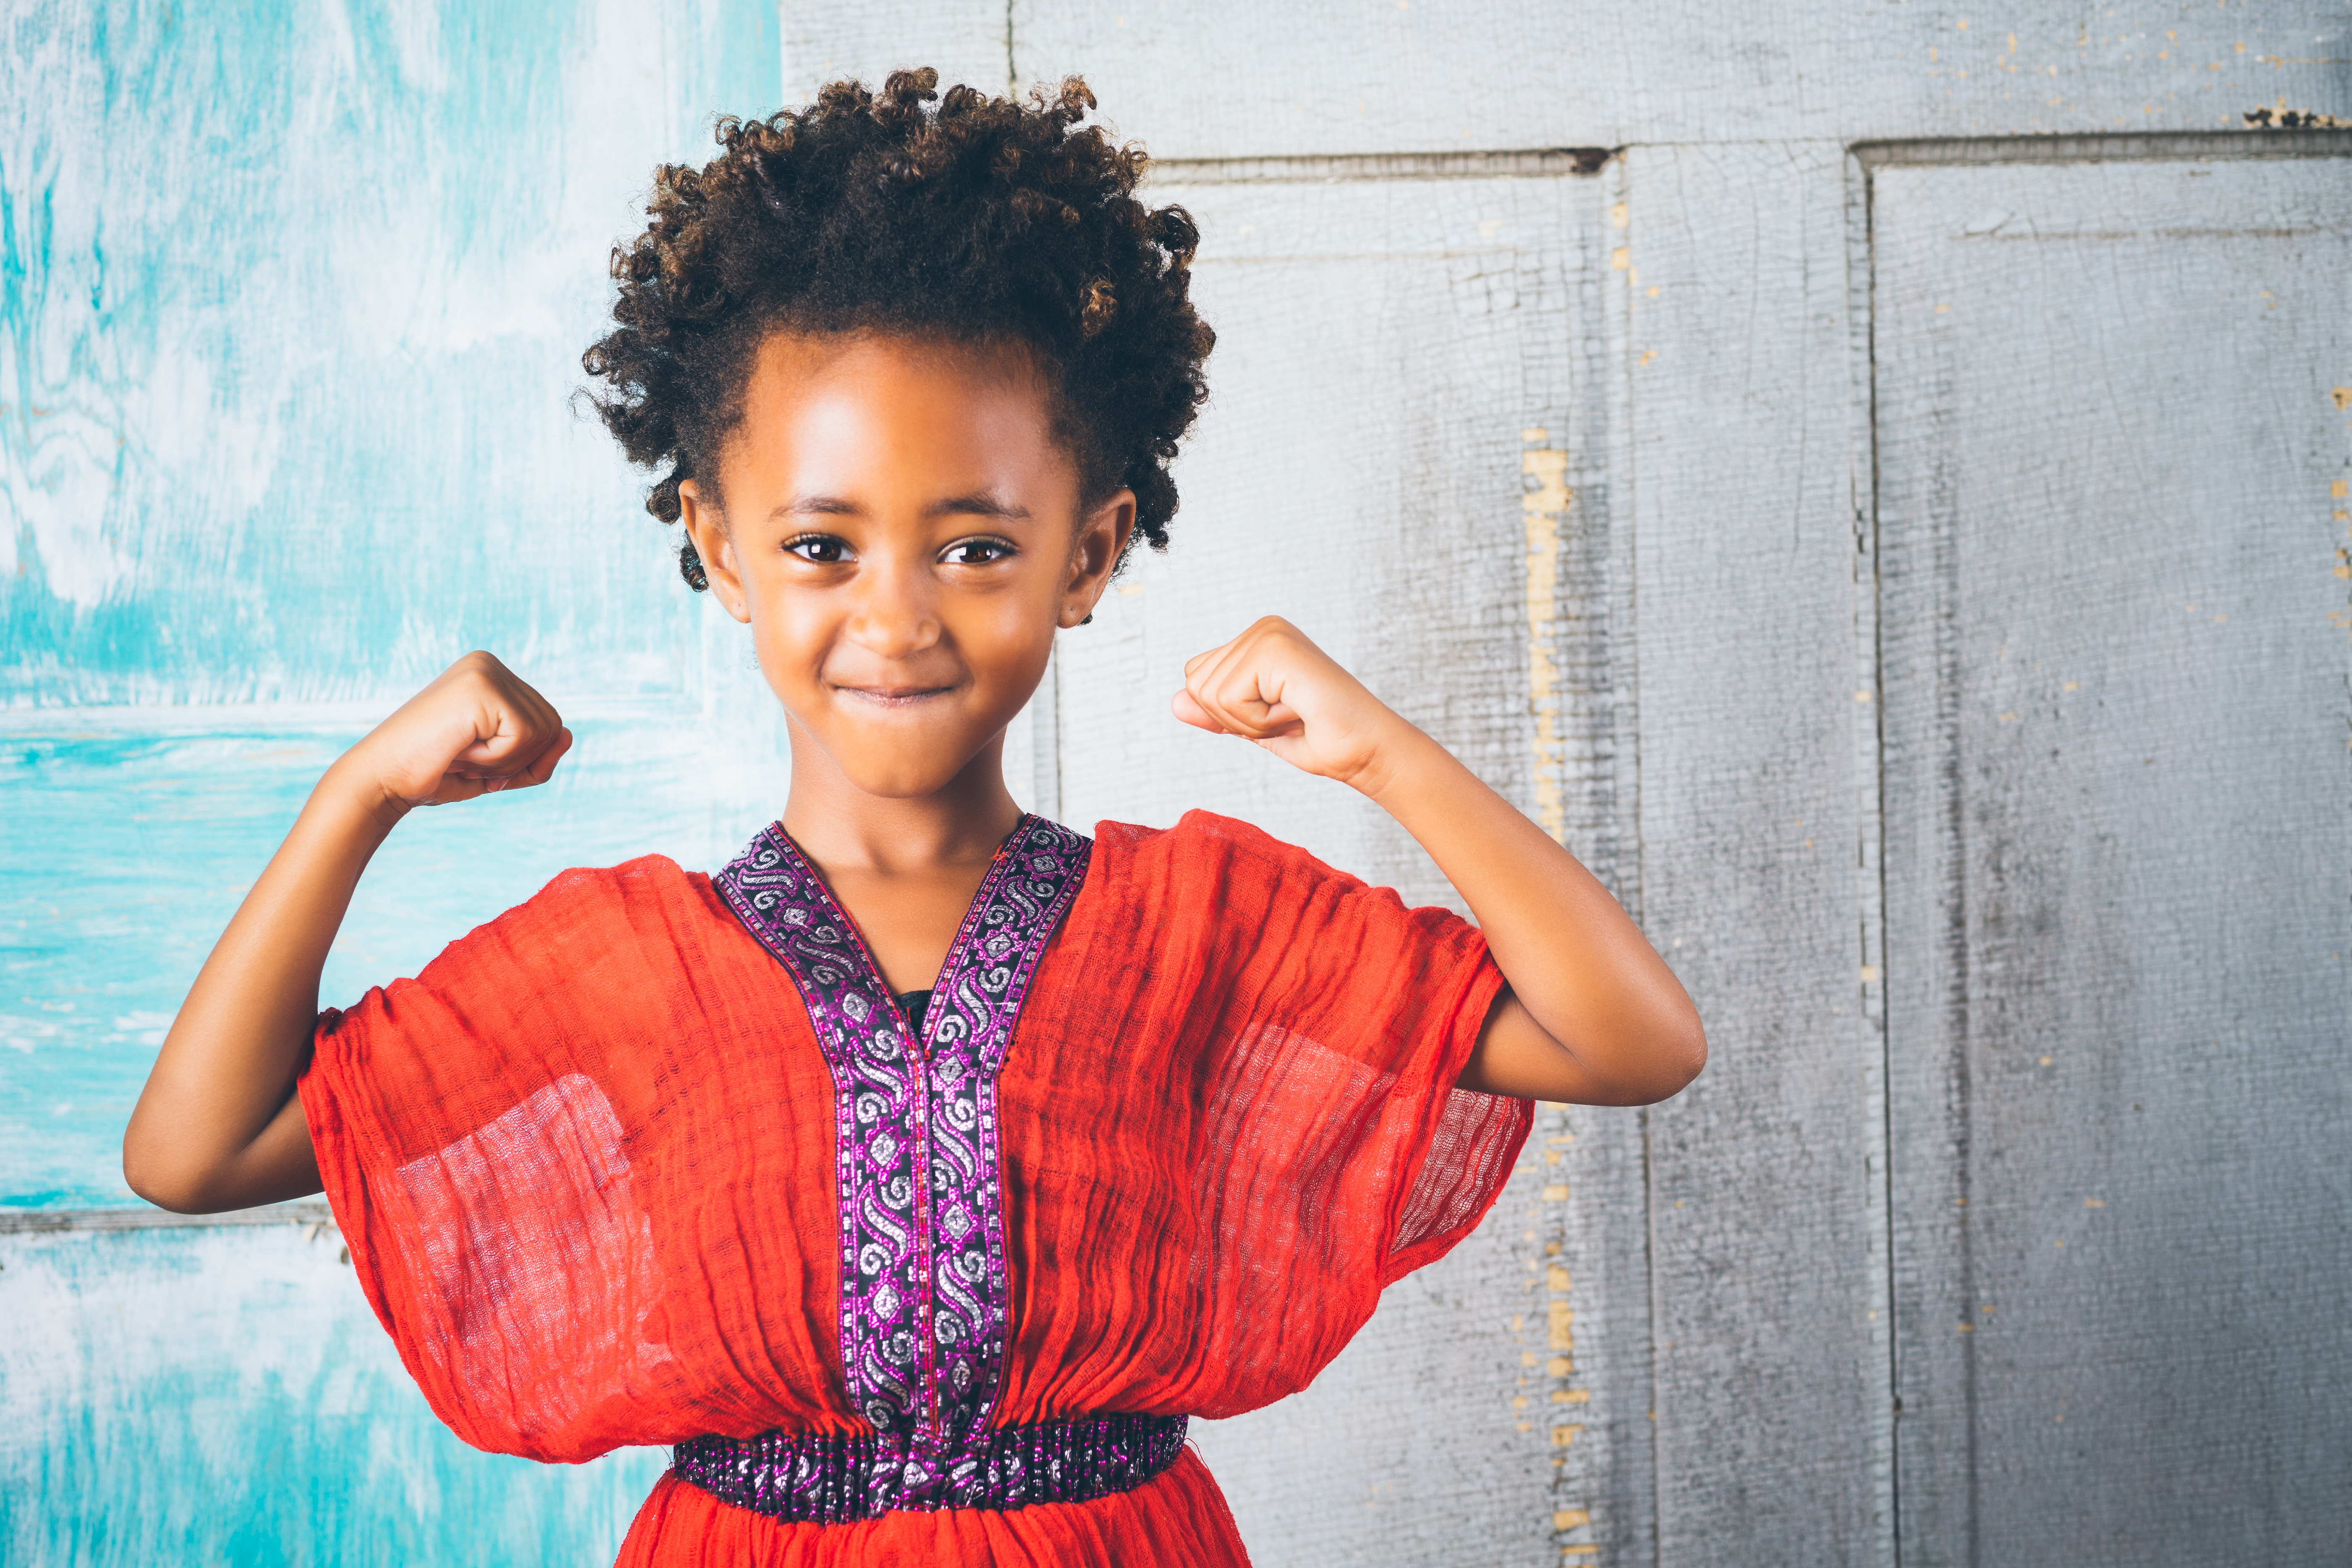 Beautiful young Ethiopian girl in traditional clothing, showing strength